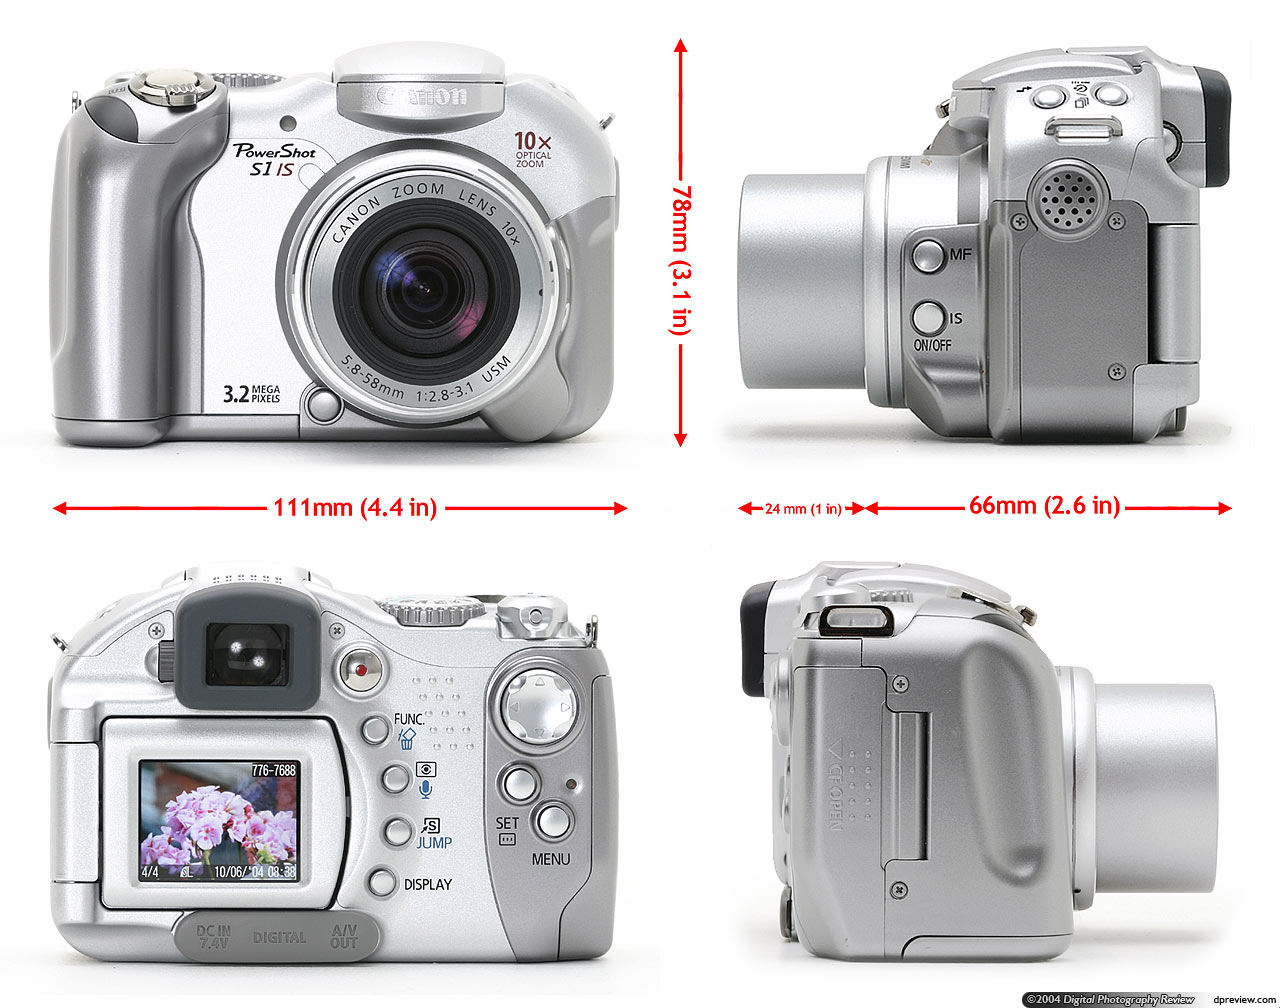 canon powershot s1 is review digital photography review rh dpreview com Canon Pro-1 Canon Rebel S1